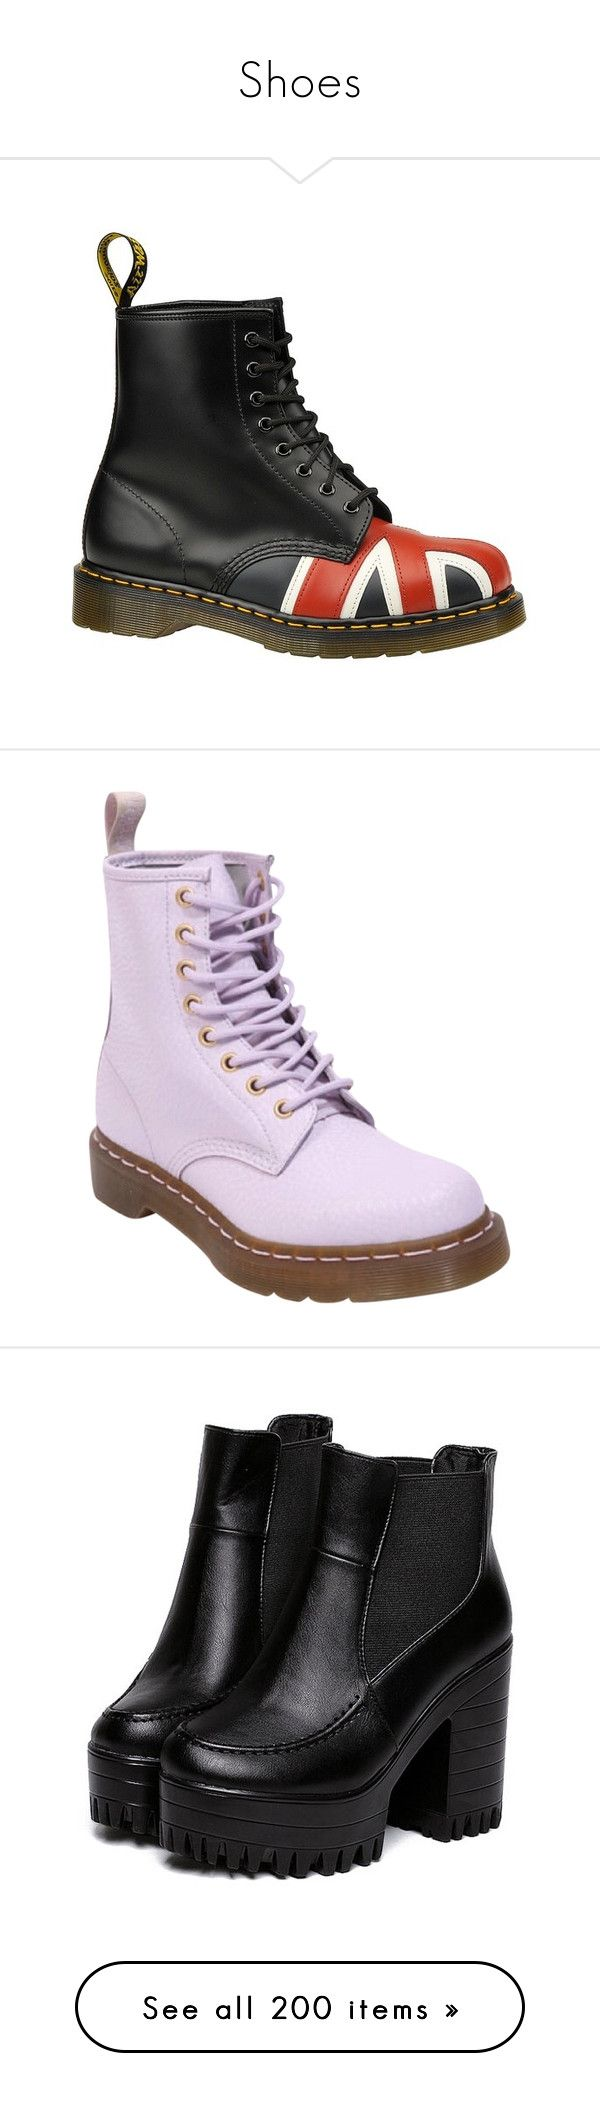 """""""Shoes"""" by beccaconnor ❤ liked on Polyvore featuring shoes, boots, black, dr martens boots, ski shoes, dr martens footwear, rubber sole shoes, dr martens shoes, lavender and lavender shoes"""